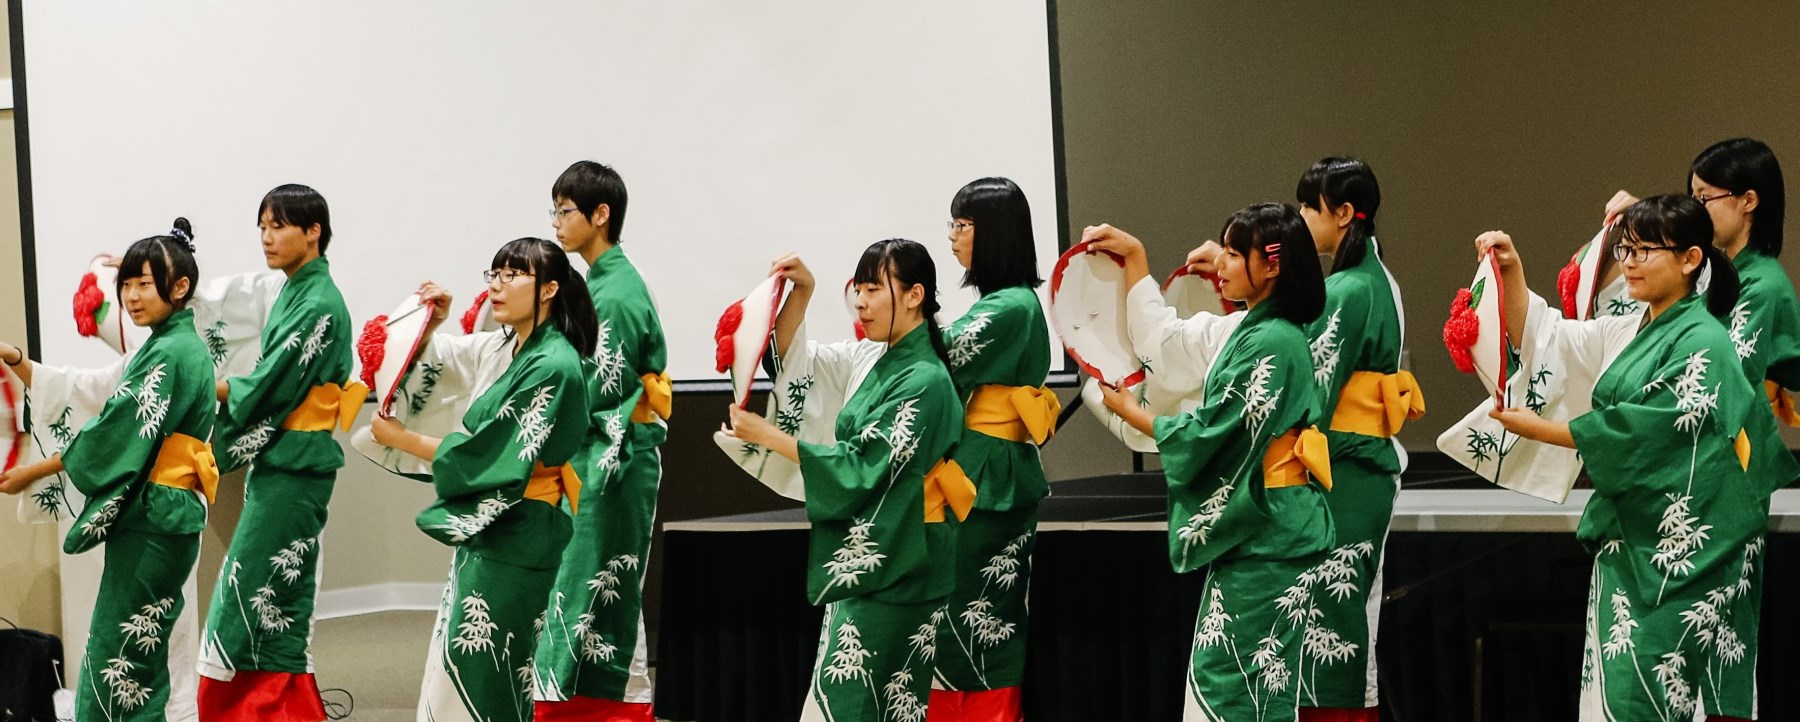 japanese students dancing